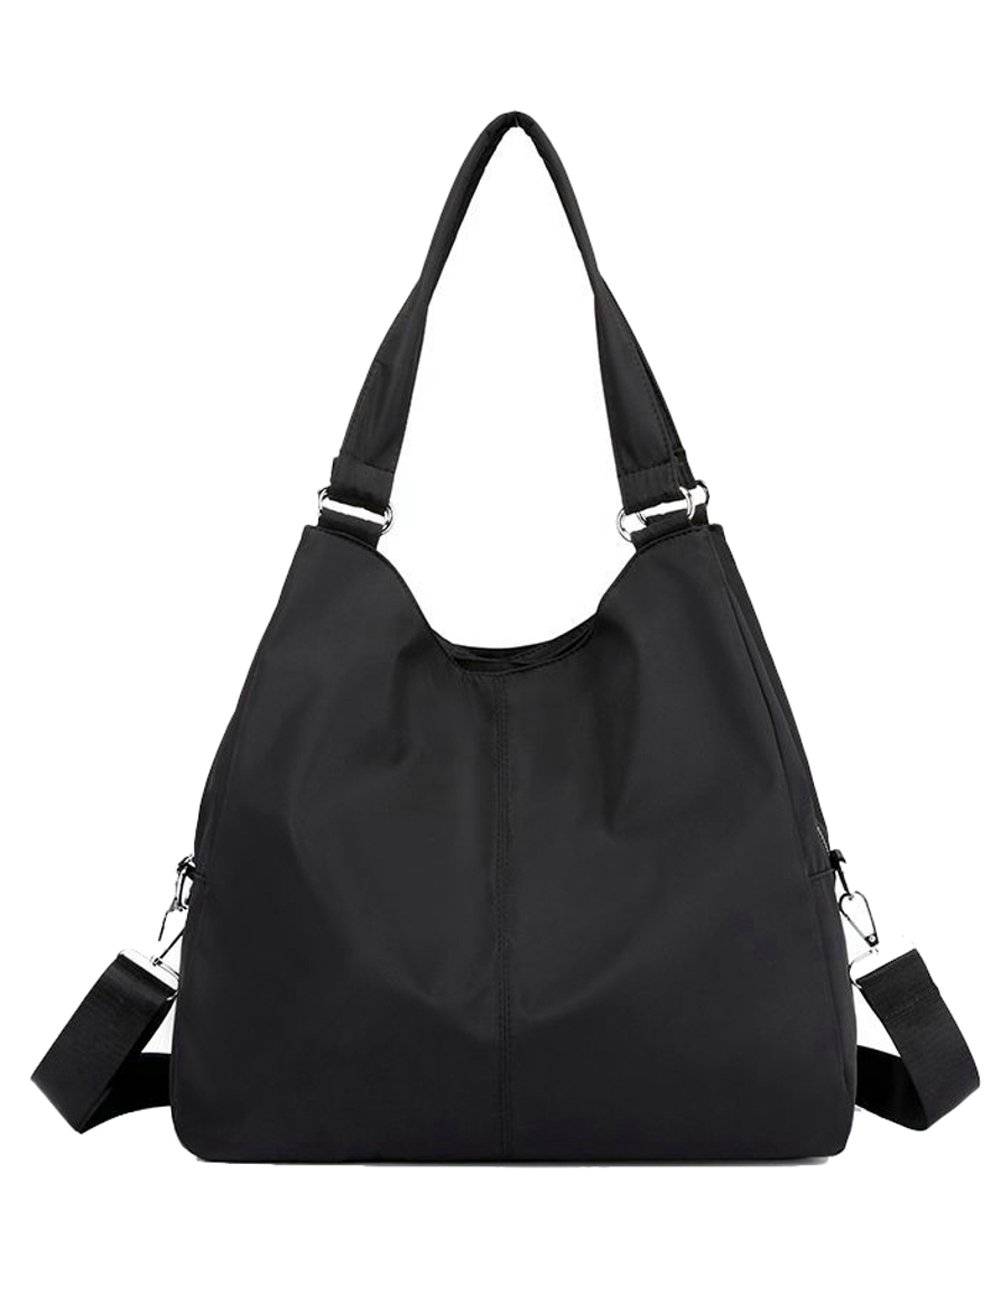 Hobo Shoulder Tote Bag, Women Waterproof Multi-function Roomy Handbag Cross-body Bag with Zipper (Black)